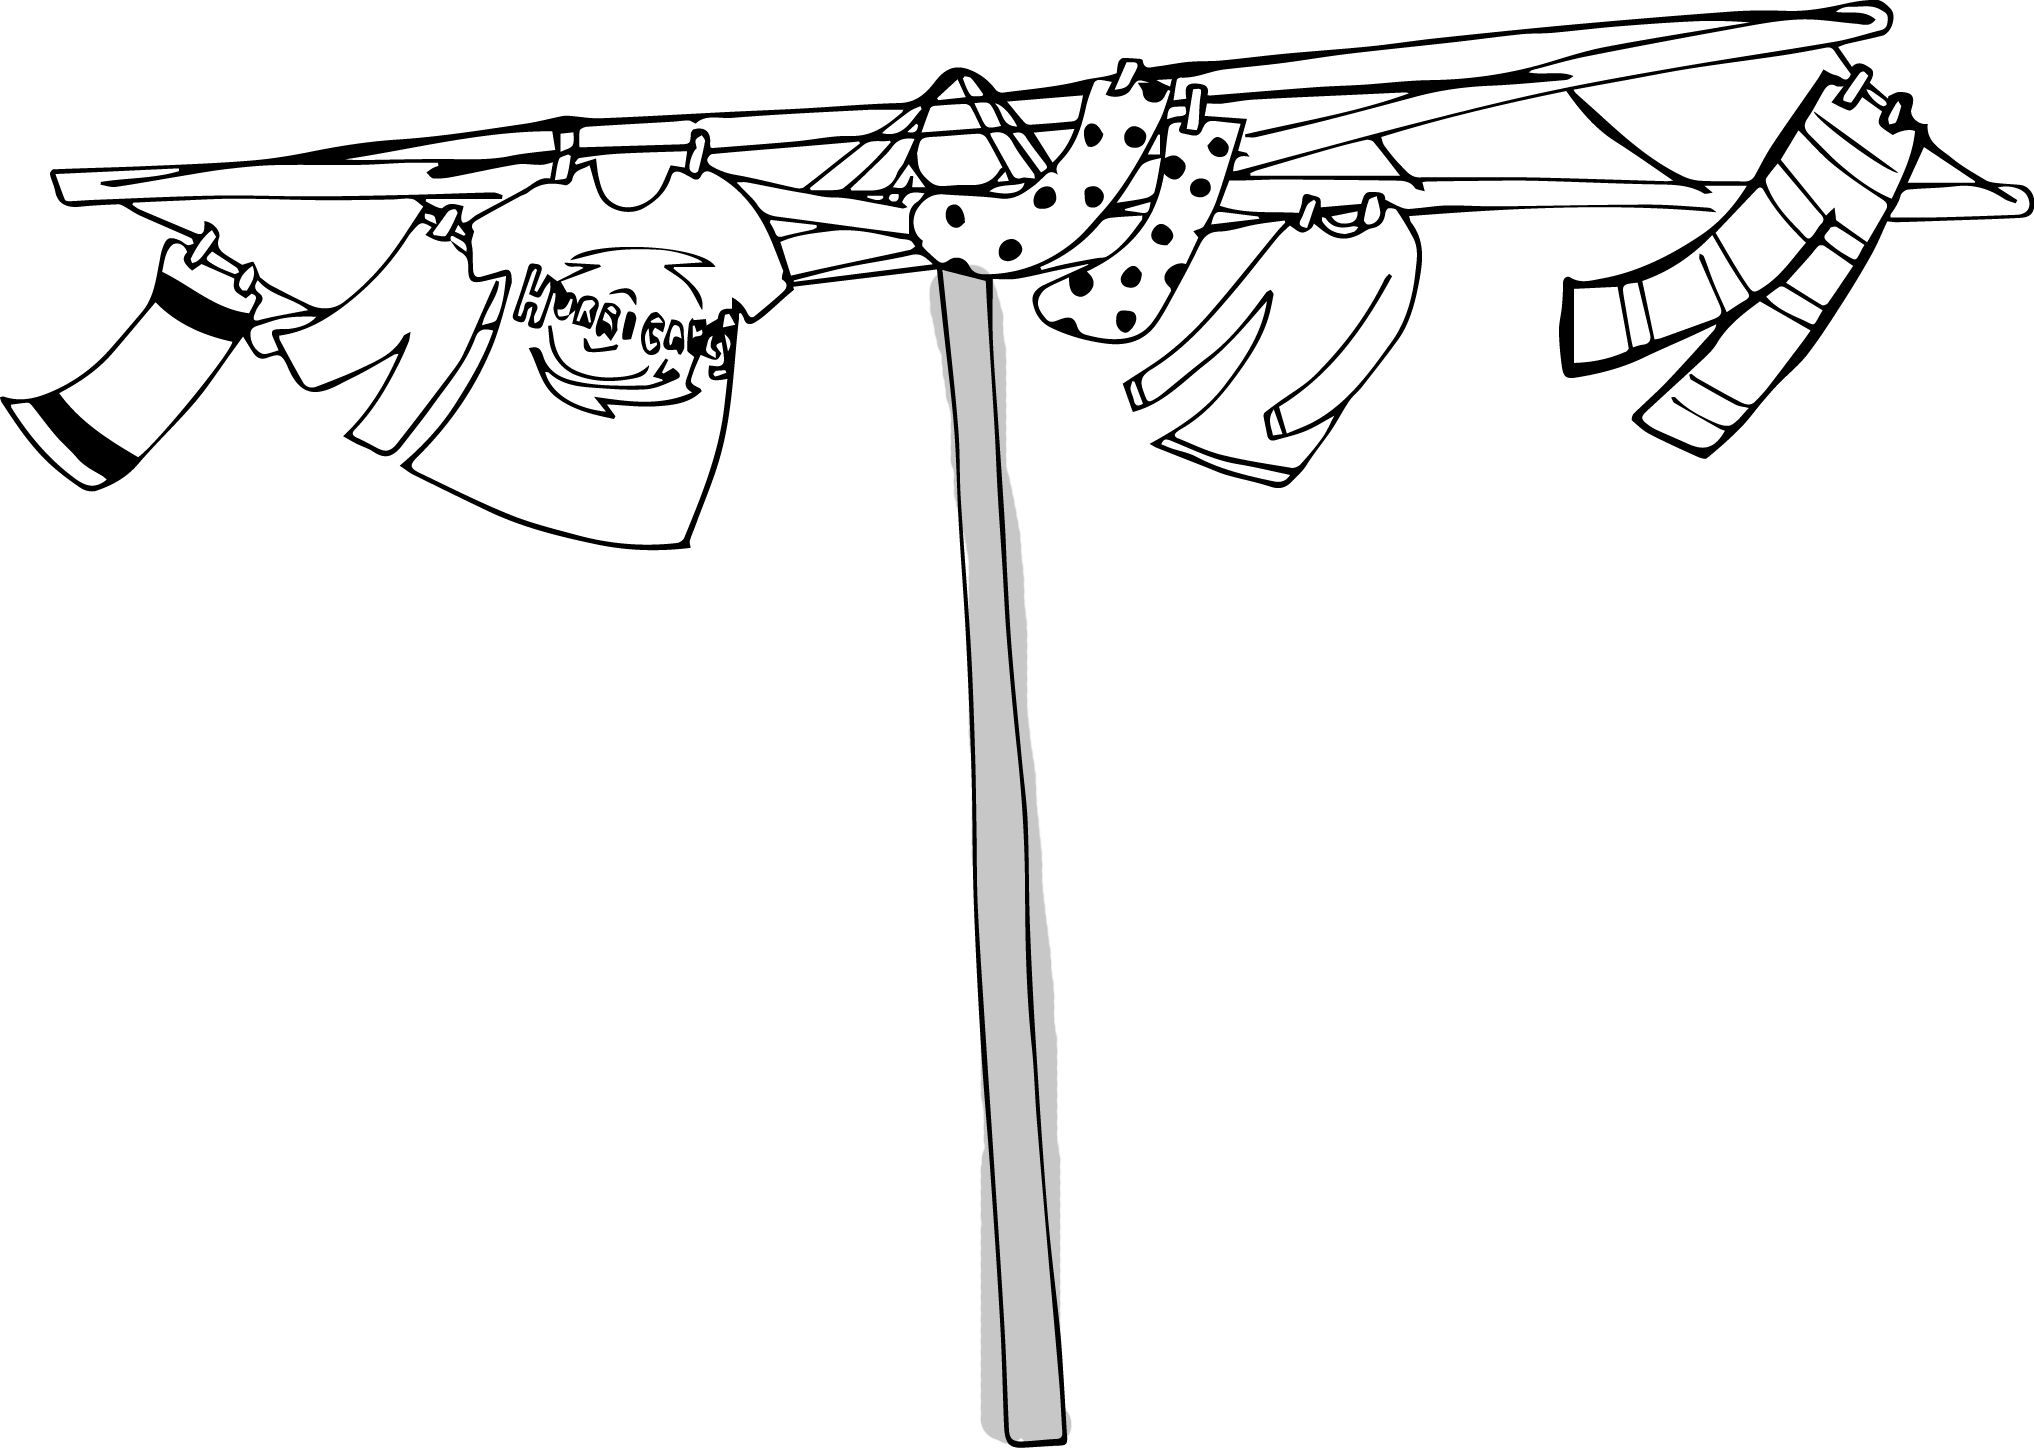 vectorwashingline.png